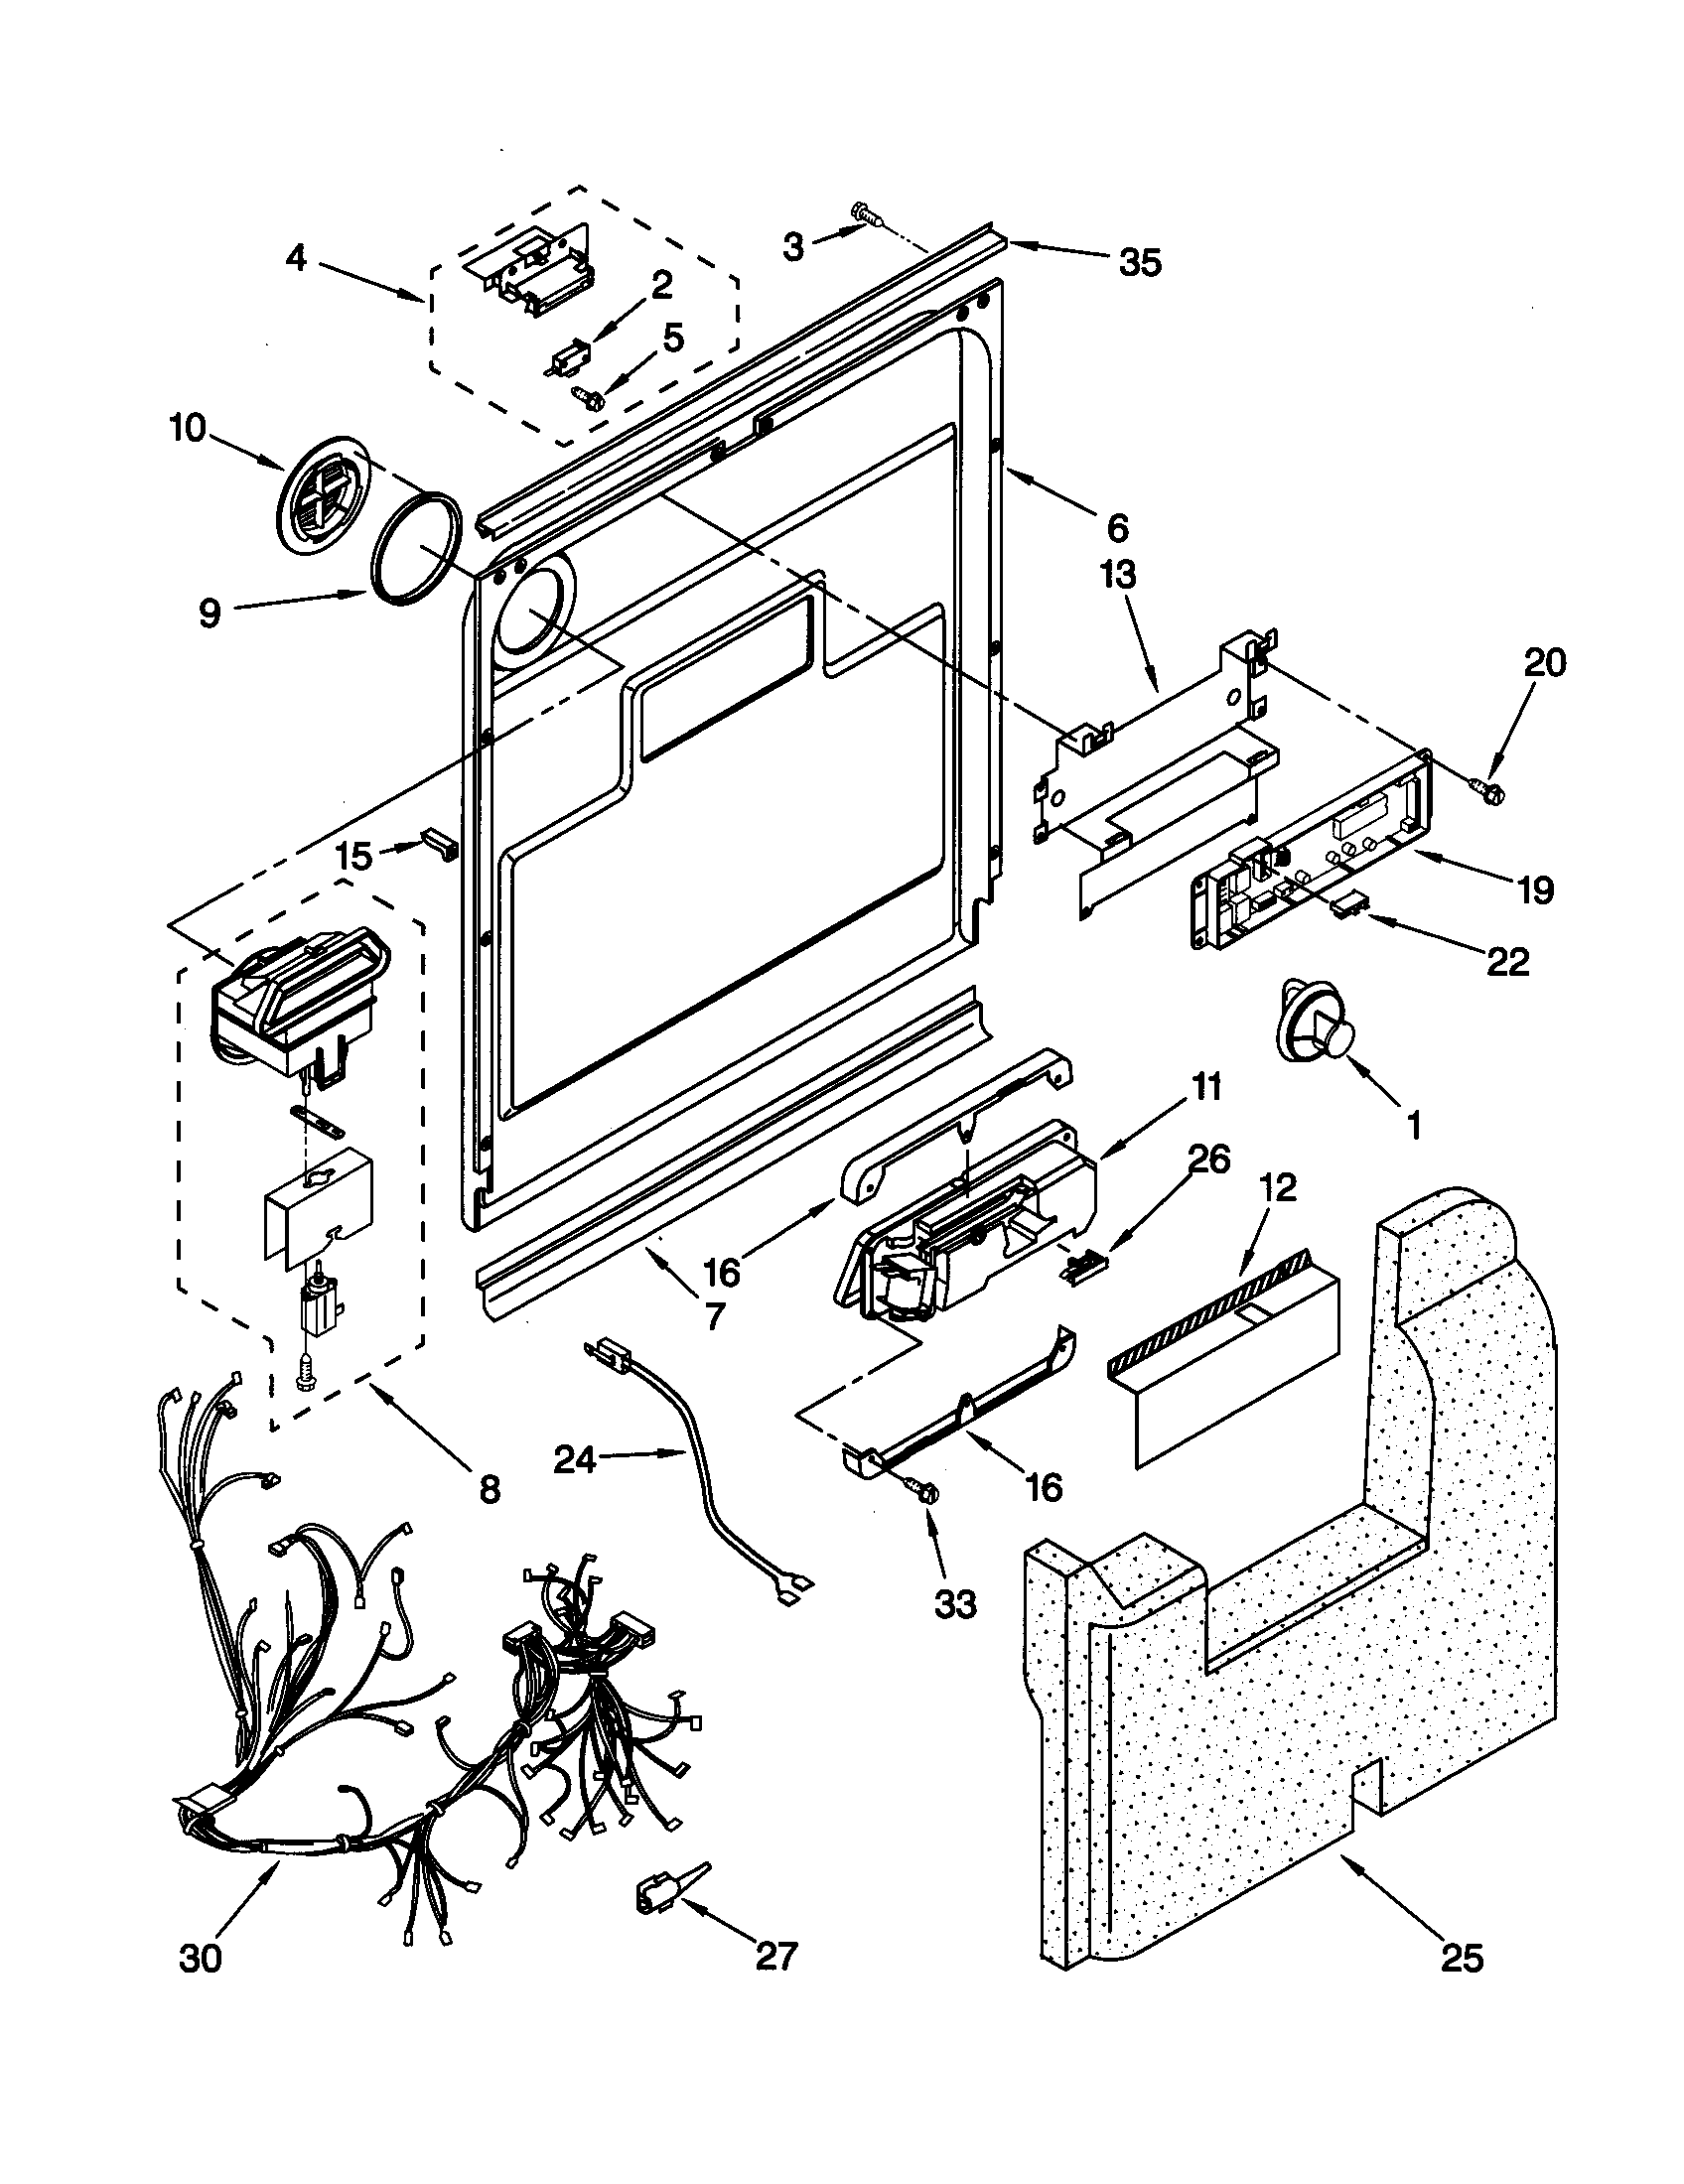 DOOR AND LATCH Diagram & Parts List for Model kuds24sewh5